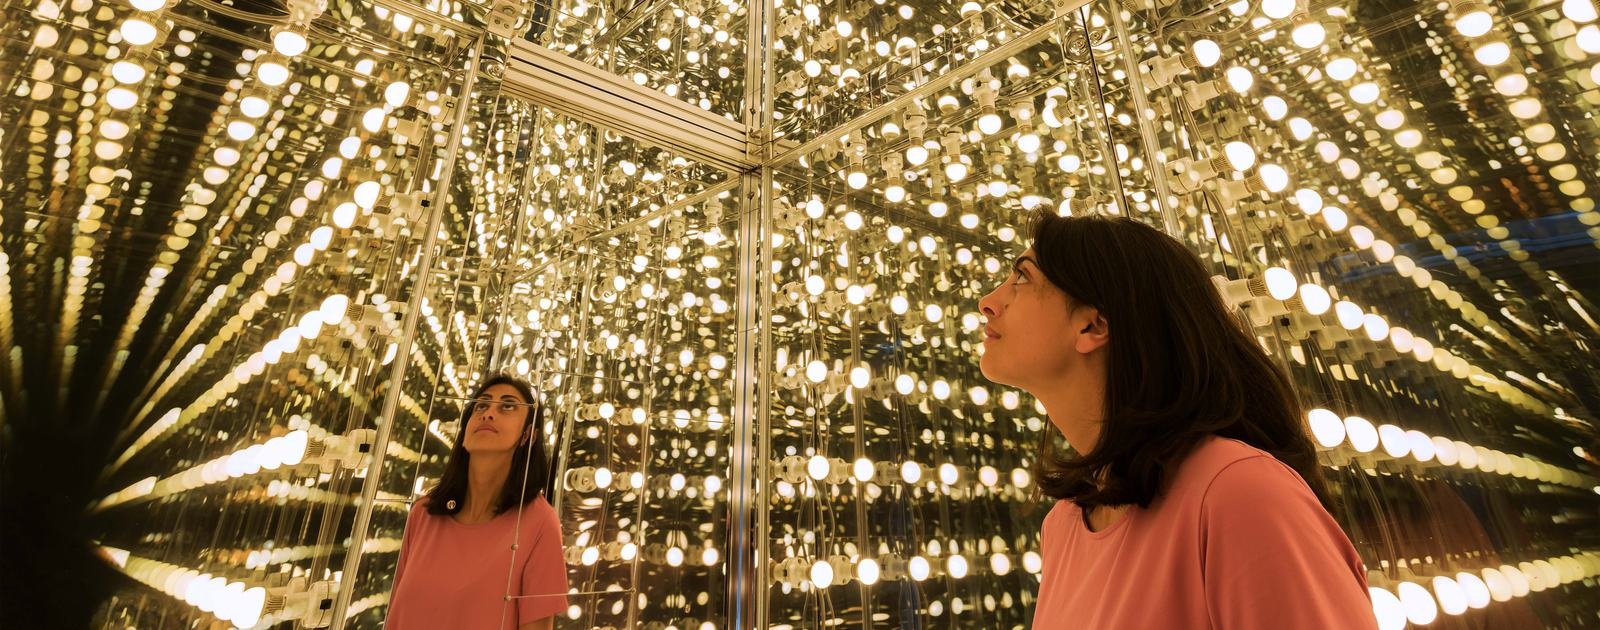 Installation view of Lee Bul, Via Negativa II, 2014 at Hayward Gallery, 2018 (interior detail) © Lee Bul 2018  Photo: Mark Blower